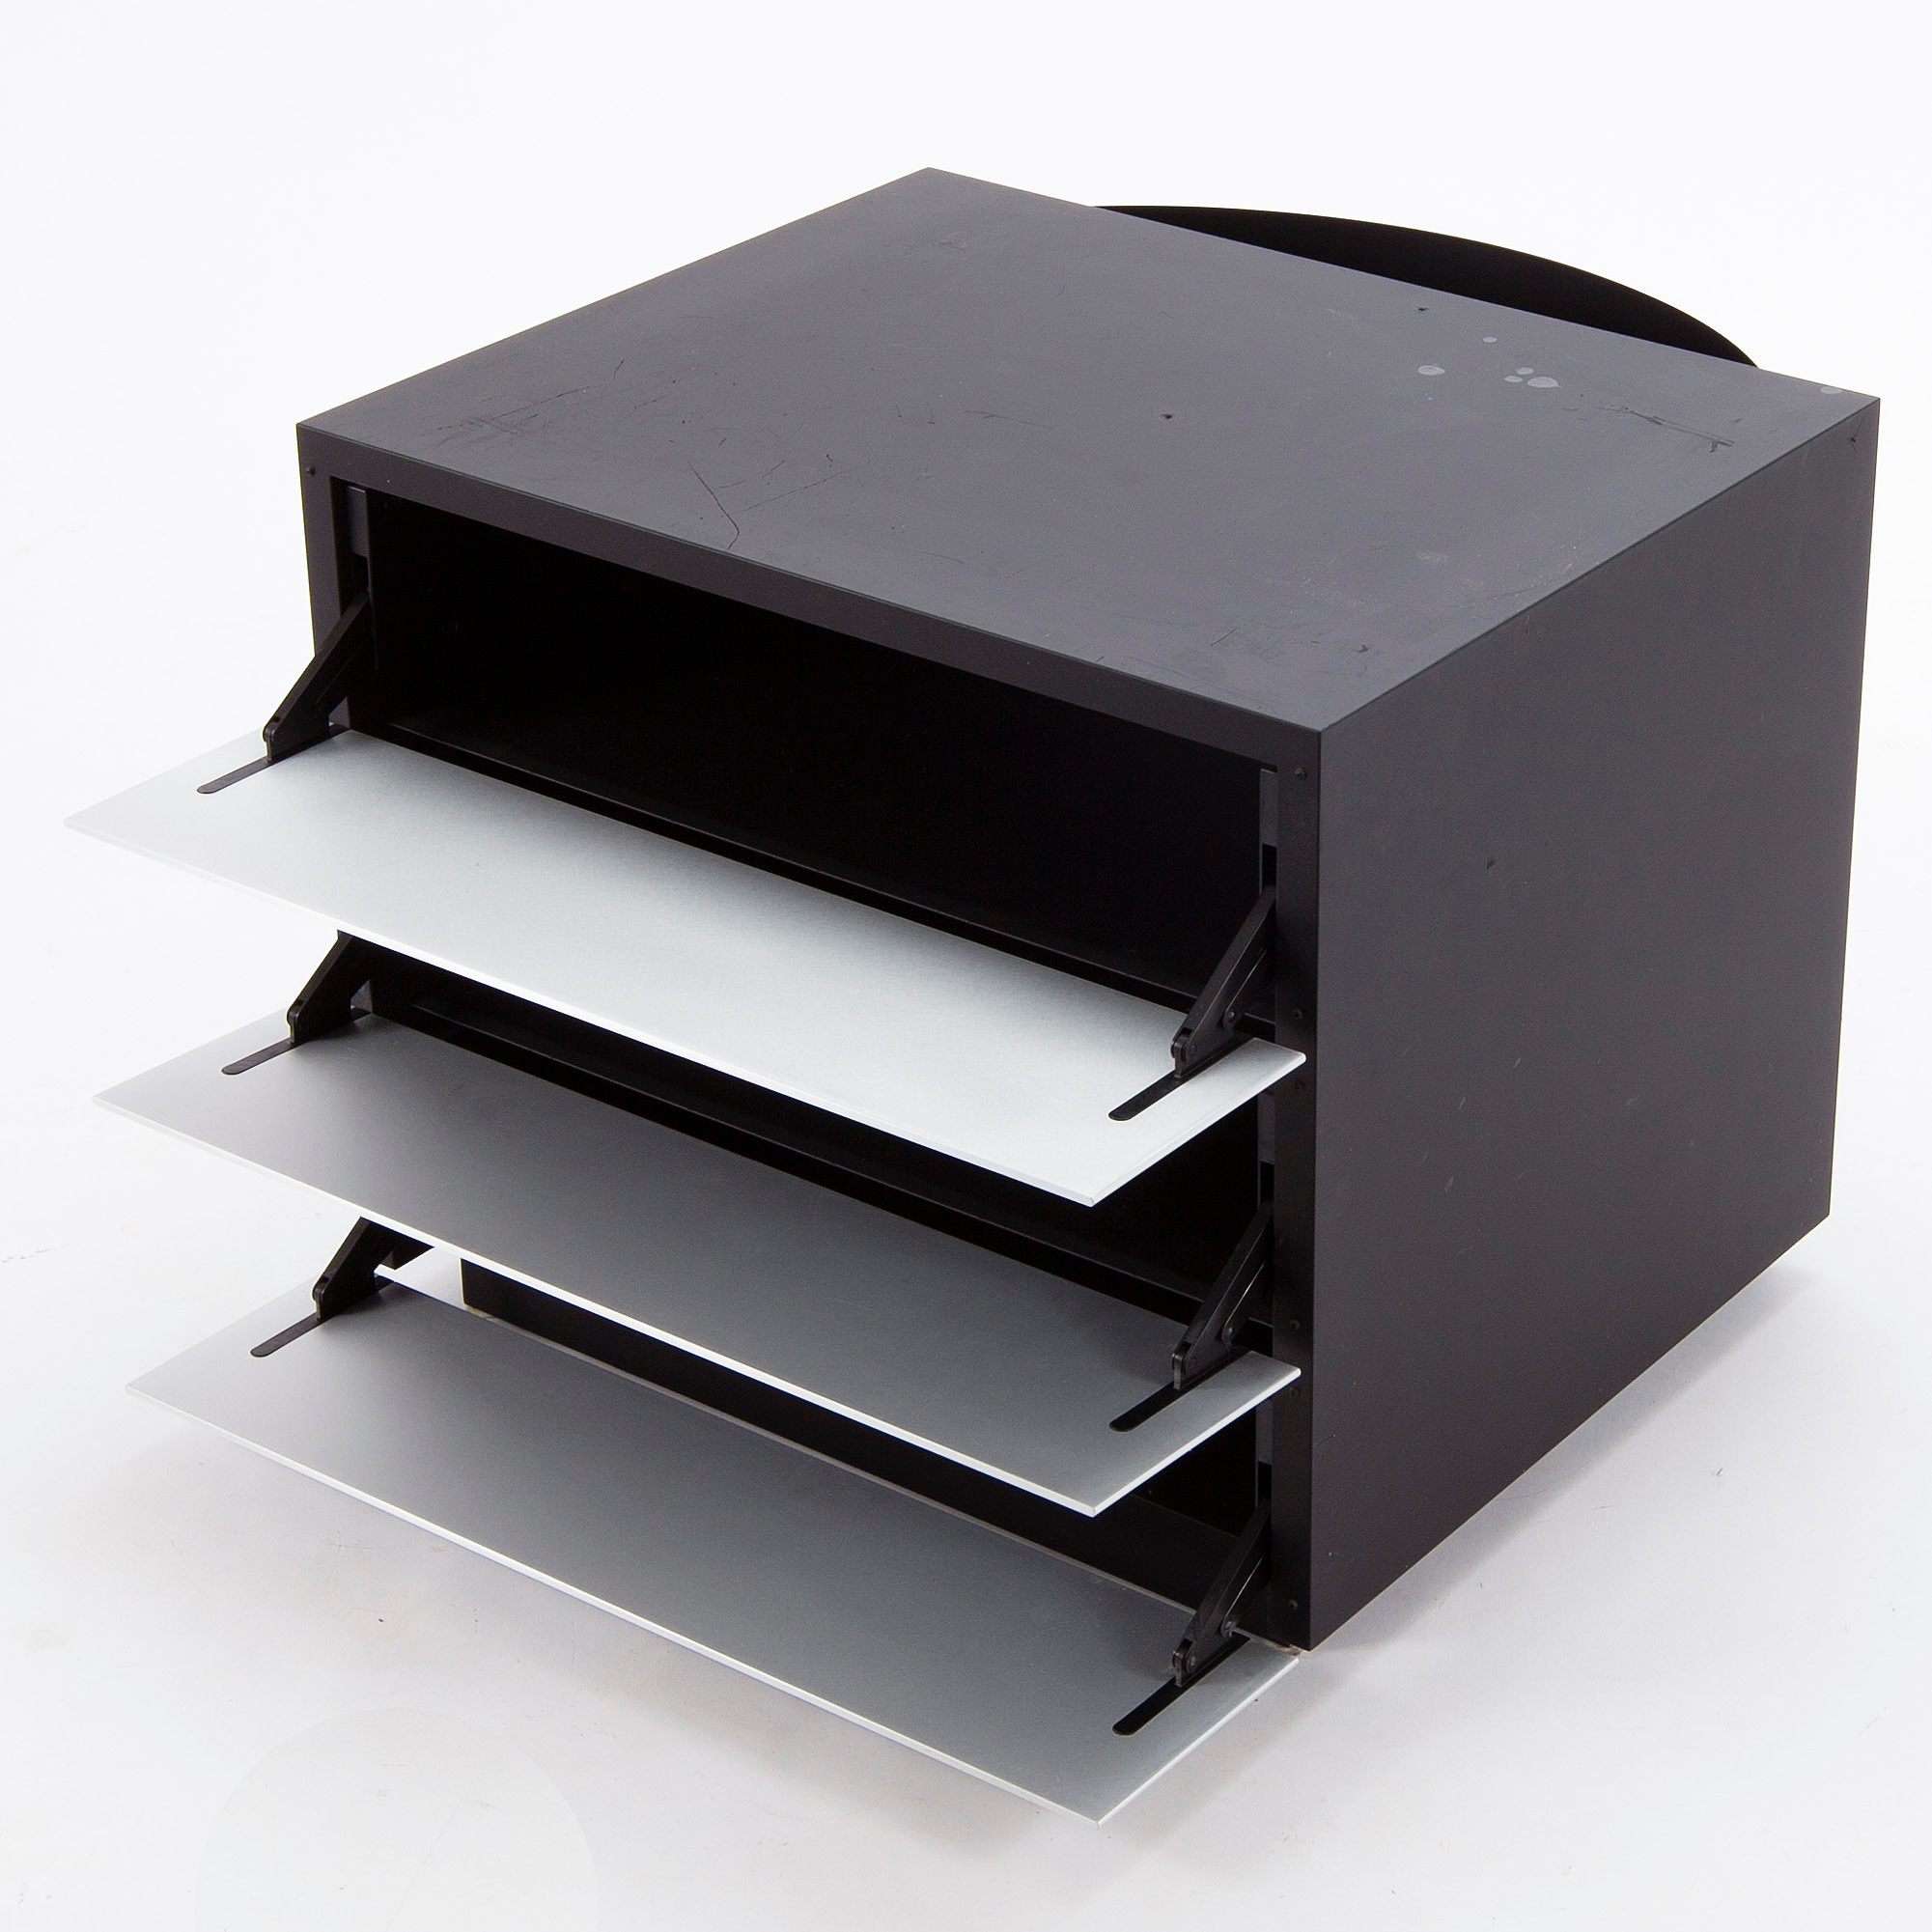 "TV STEREOBORD ""Video Stand 4068 BeoVision 3"" Bang & Olufsen"